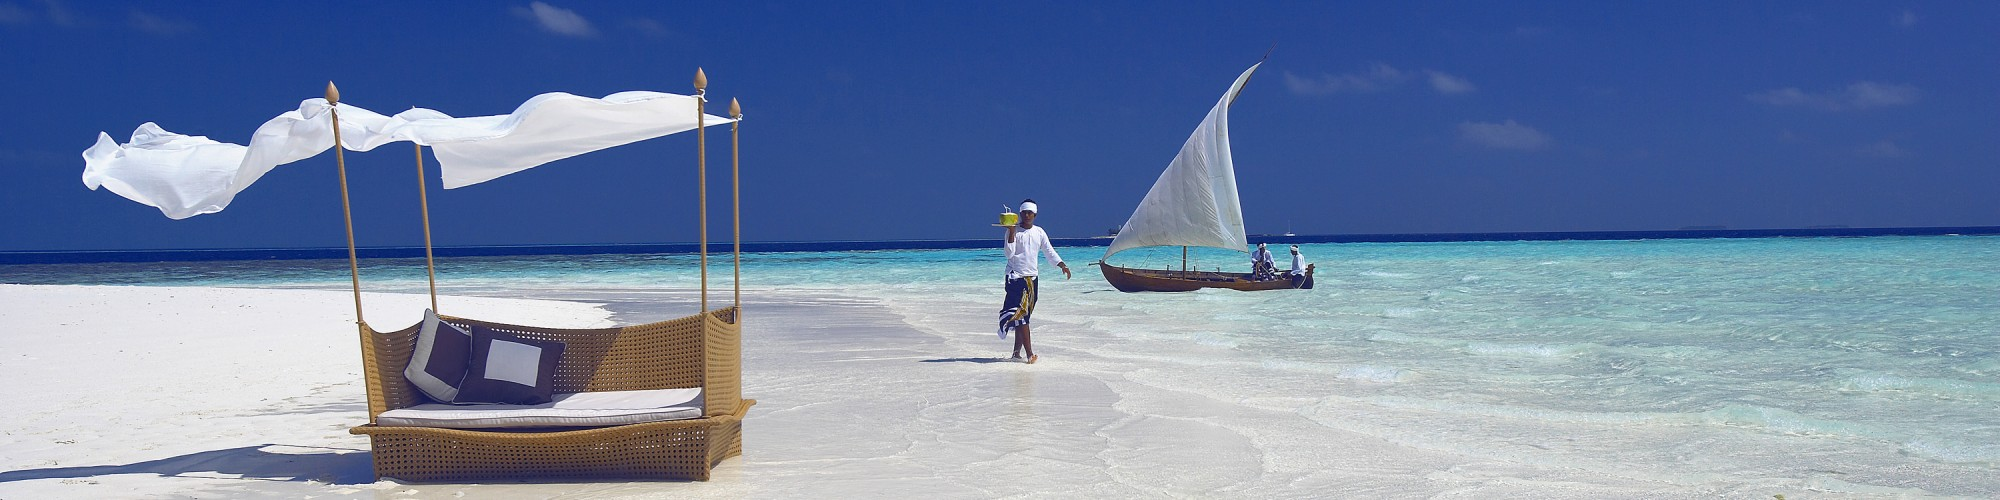 3 ©BM_Waiter on the Sandbank